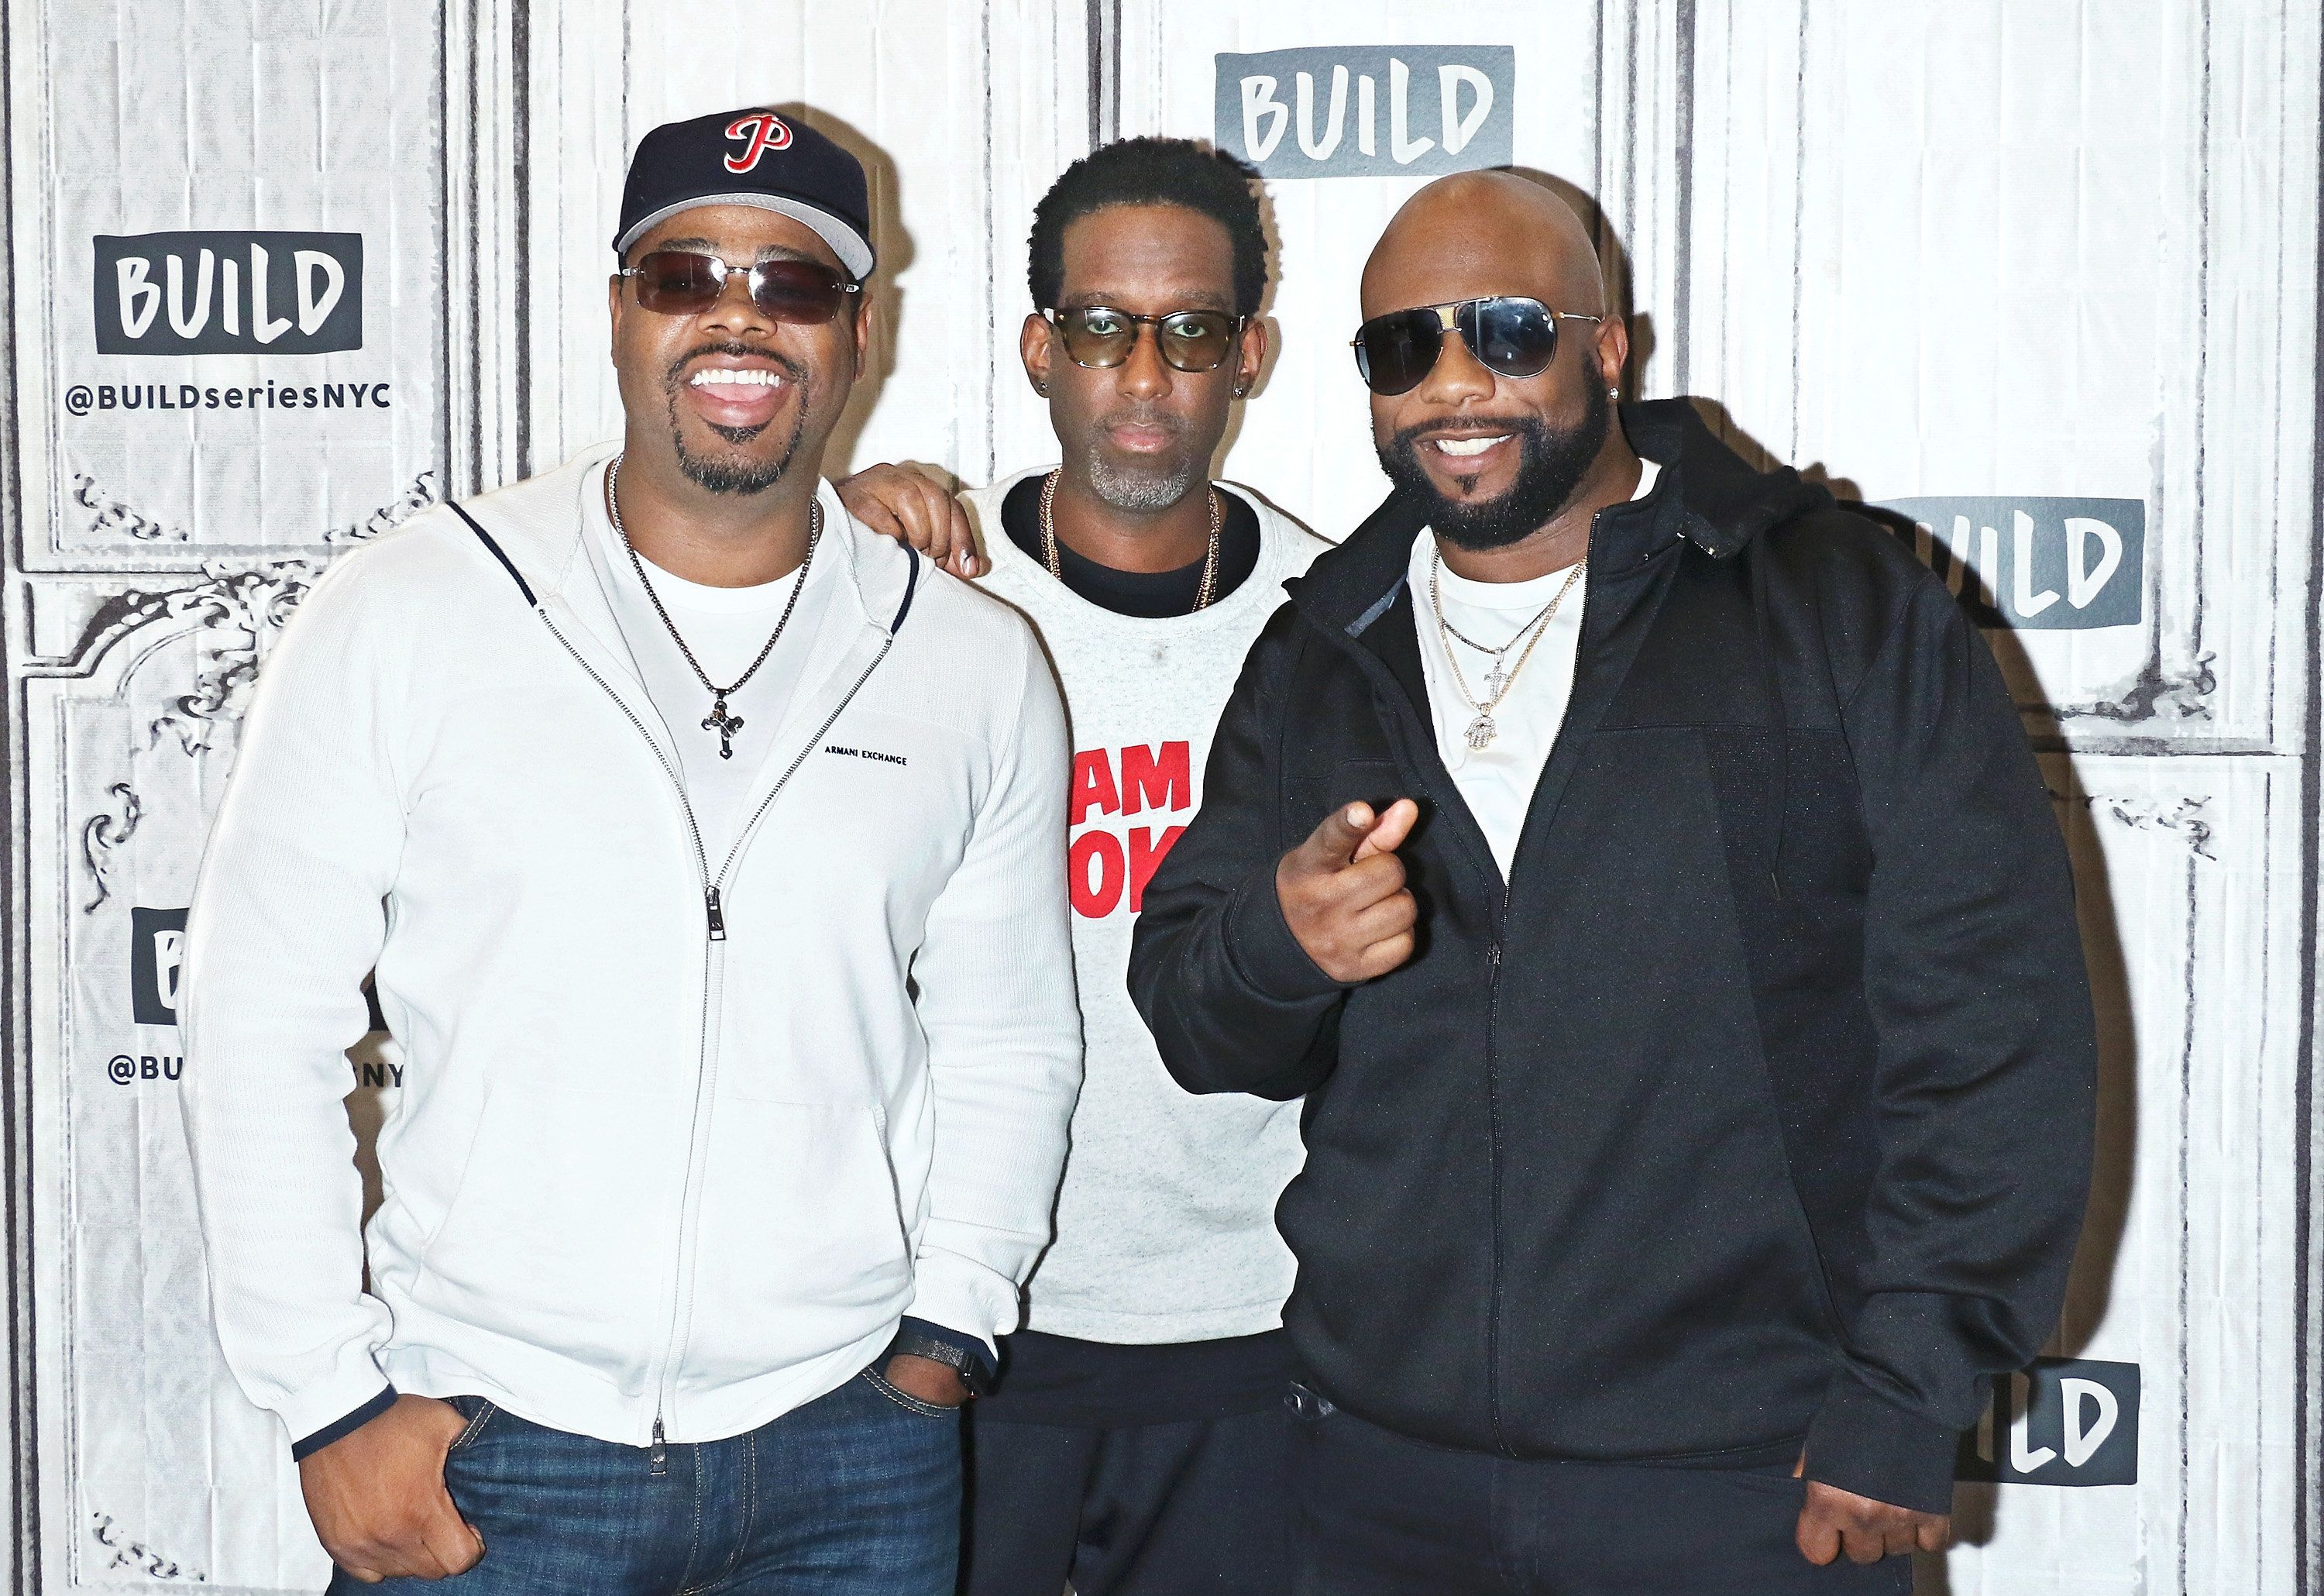 NEW YORK, NY - OCTOBER 19:  Singers Nathan Morris, Shawn Stockman and Wanya Morris of Boyz II Men attend Build to discuss their album 'Under the Streetlight' at Build Studio on October 19, 2017 in New York City.  (Photo by Jim Spellman/WireImage)